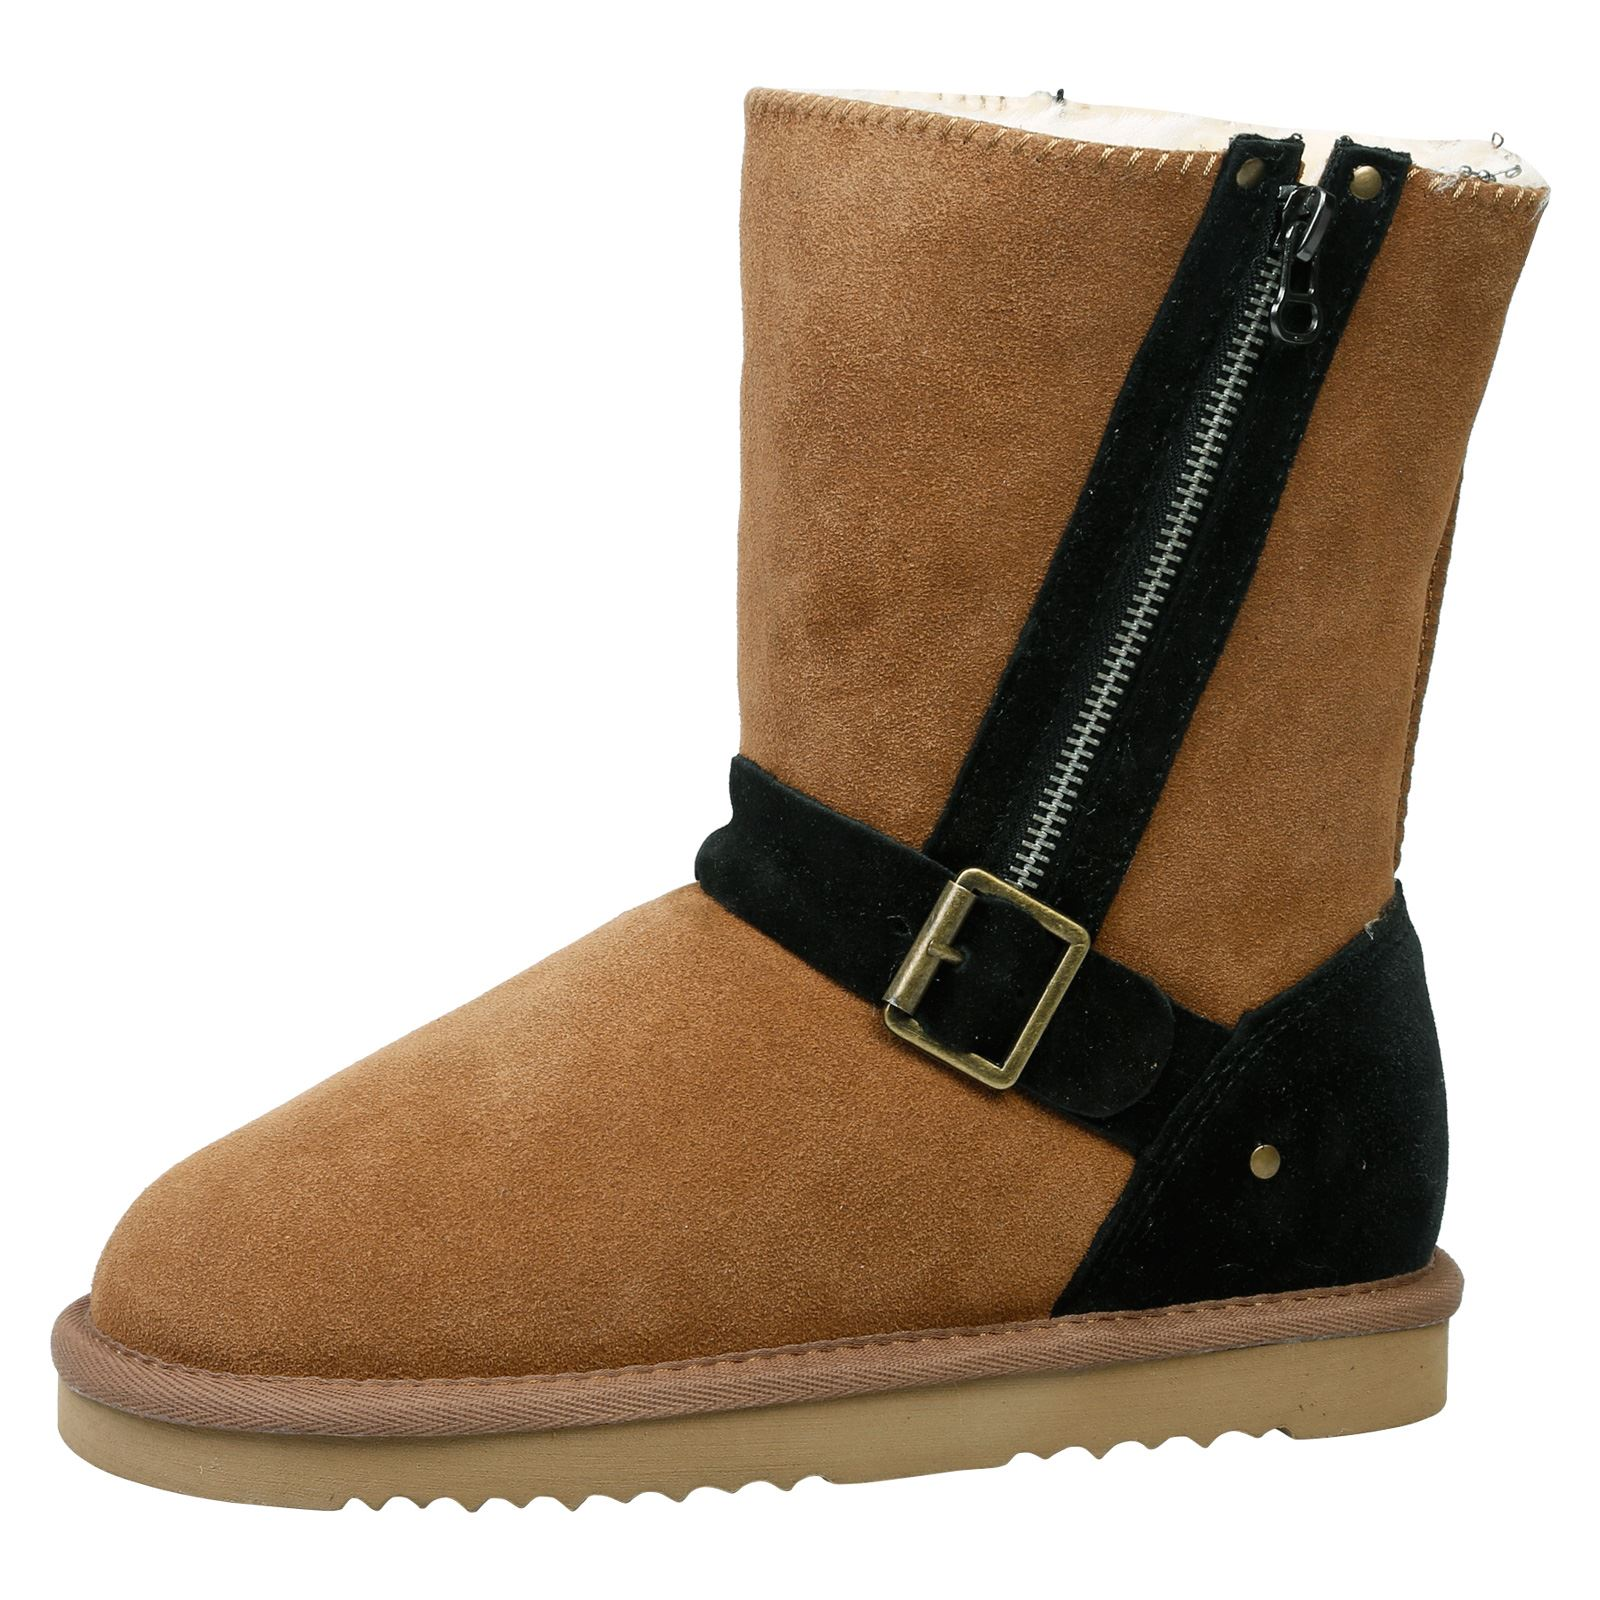 Alicia-Womens-Flats-Low-Heels-Fur-Lined-Ankle-Boots-Ladies-Shoes-Buckle-Size-New